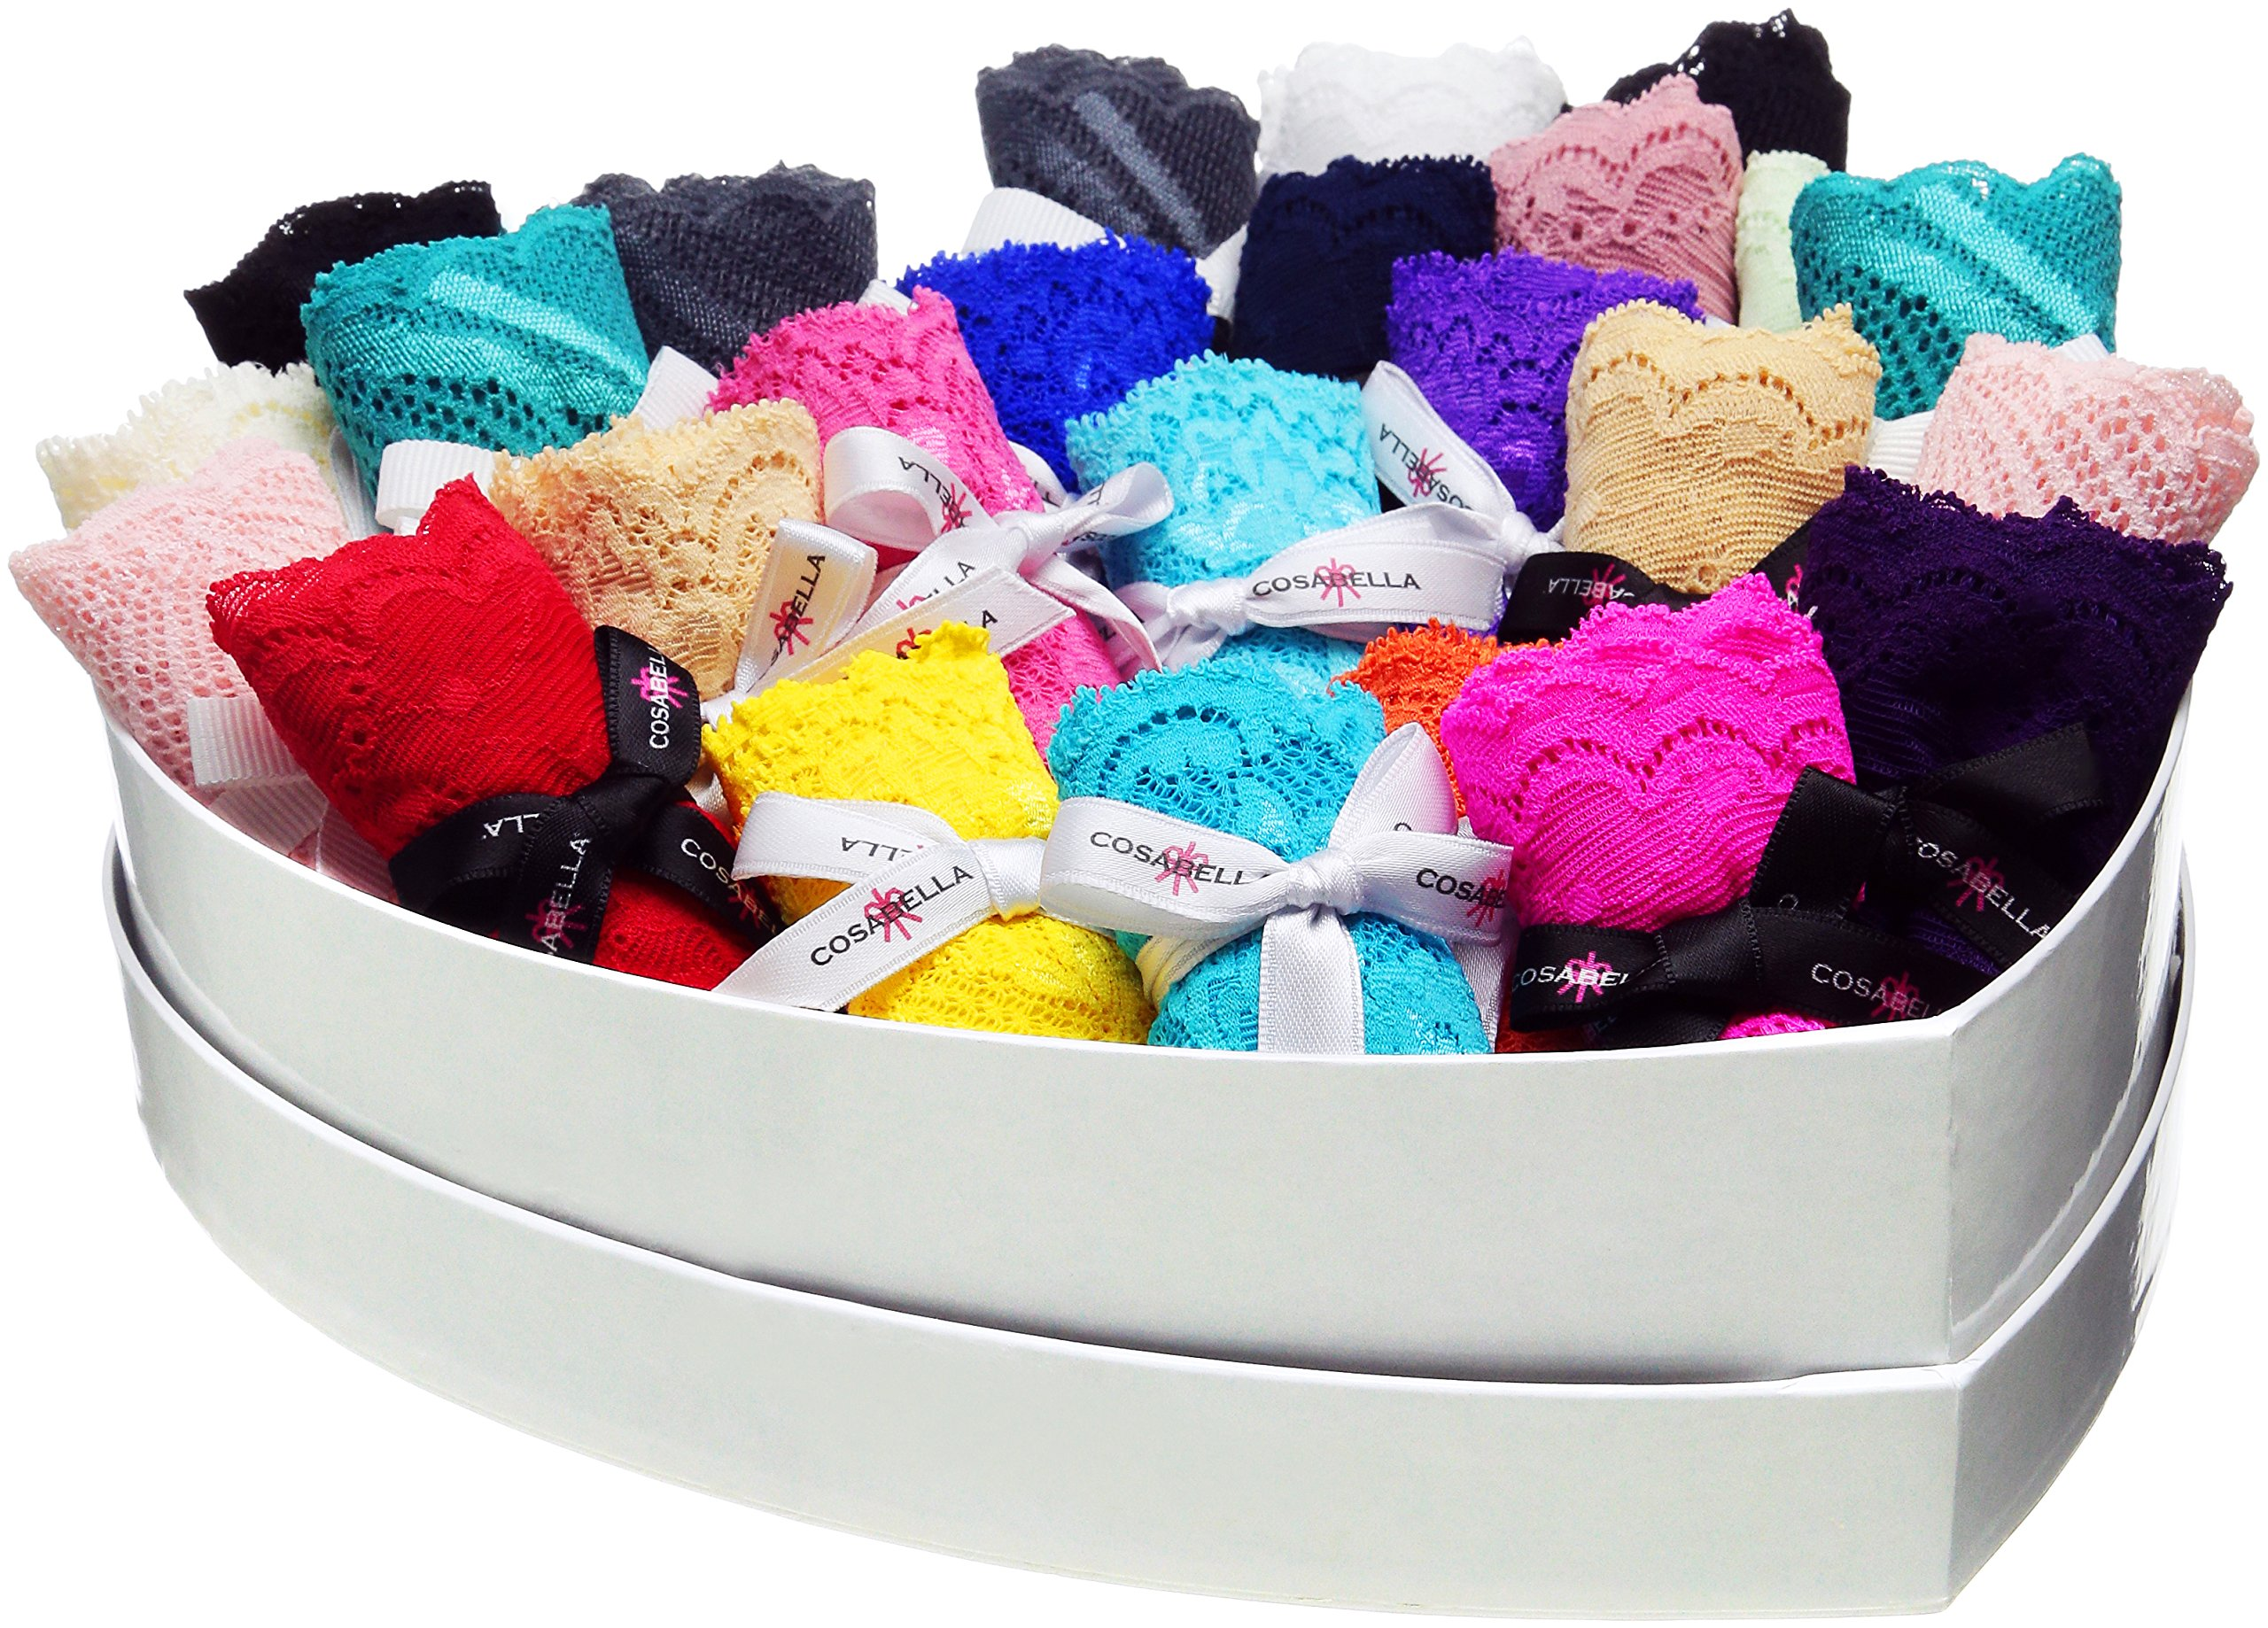 Cosabella Women's Box Of Love 25 Pack - Never Say Never Trenta and Minoa, Multi, One Size